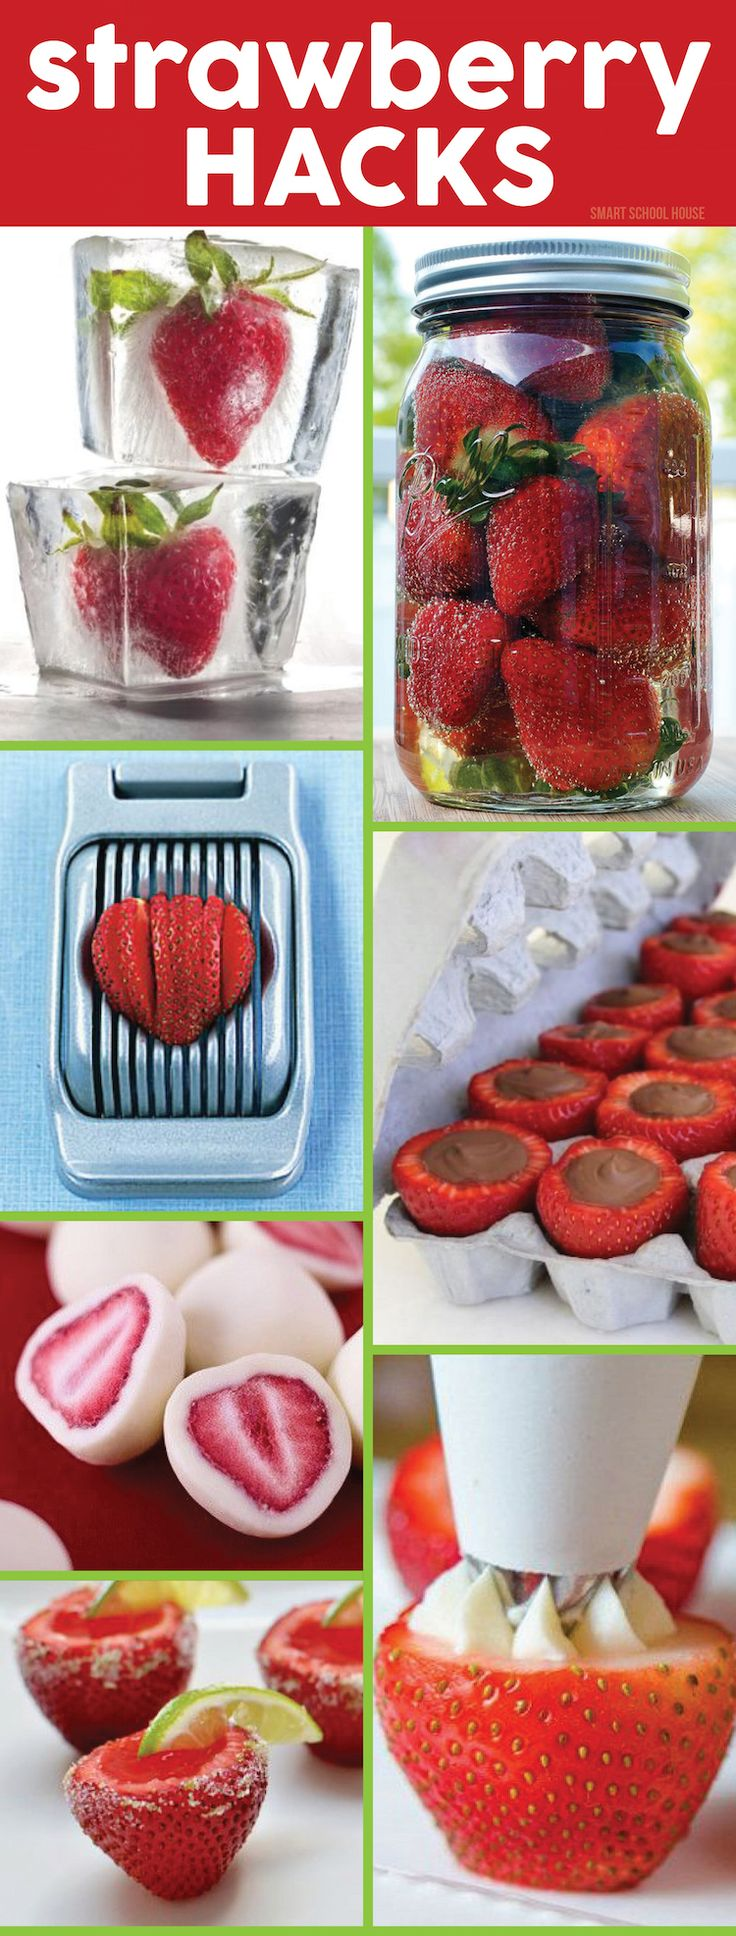 Strawberry Hacks - 16 insanely genius strawberry hacks you must see!